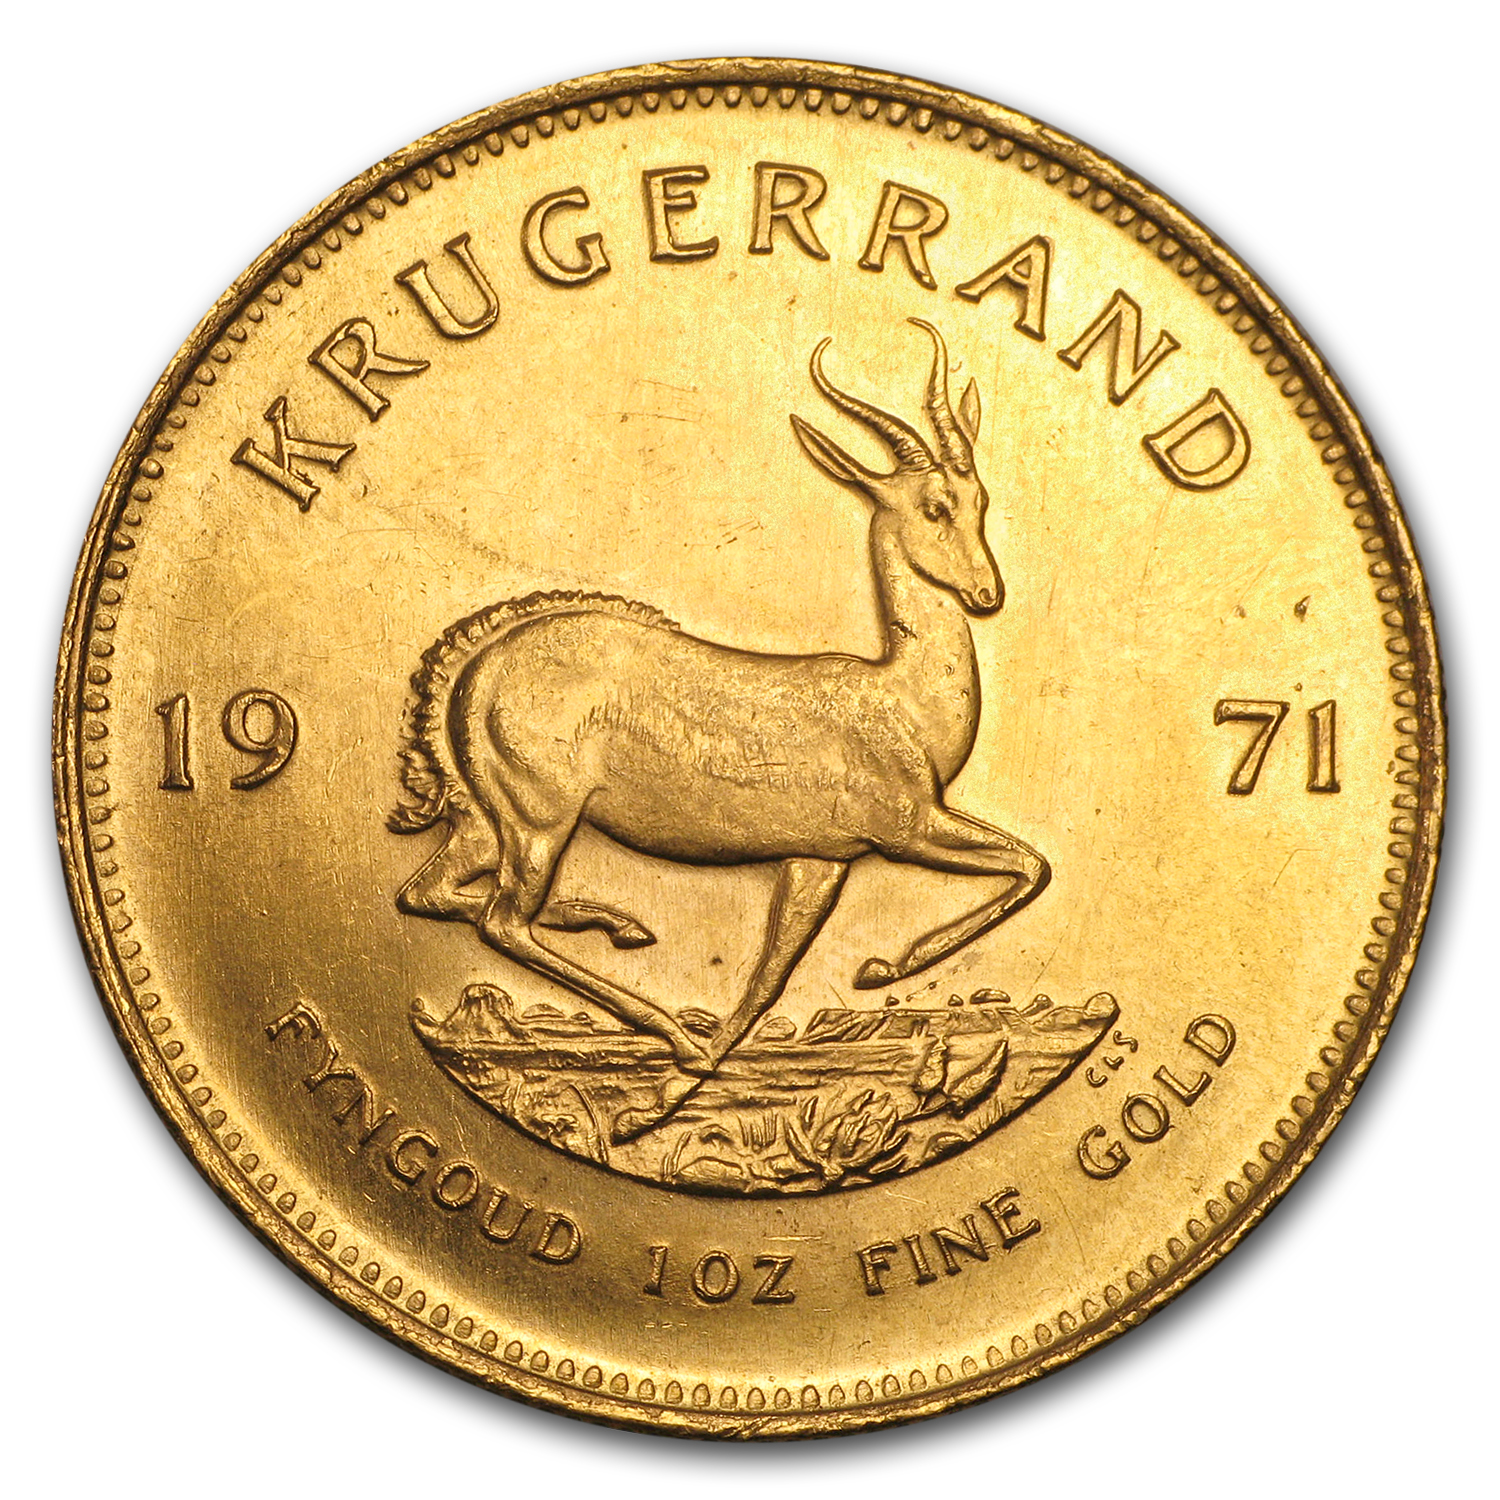 1971 South Africa 1 oz Gold Krugerrand